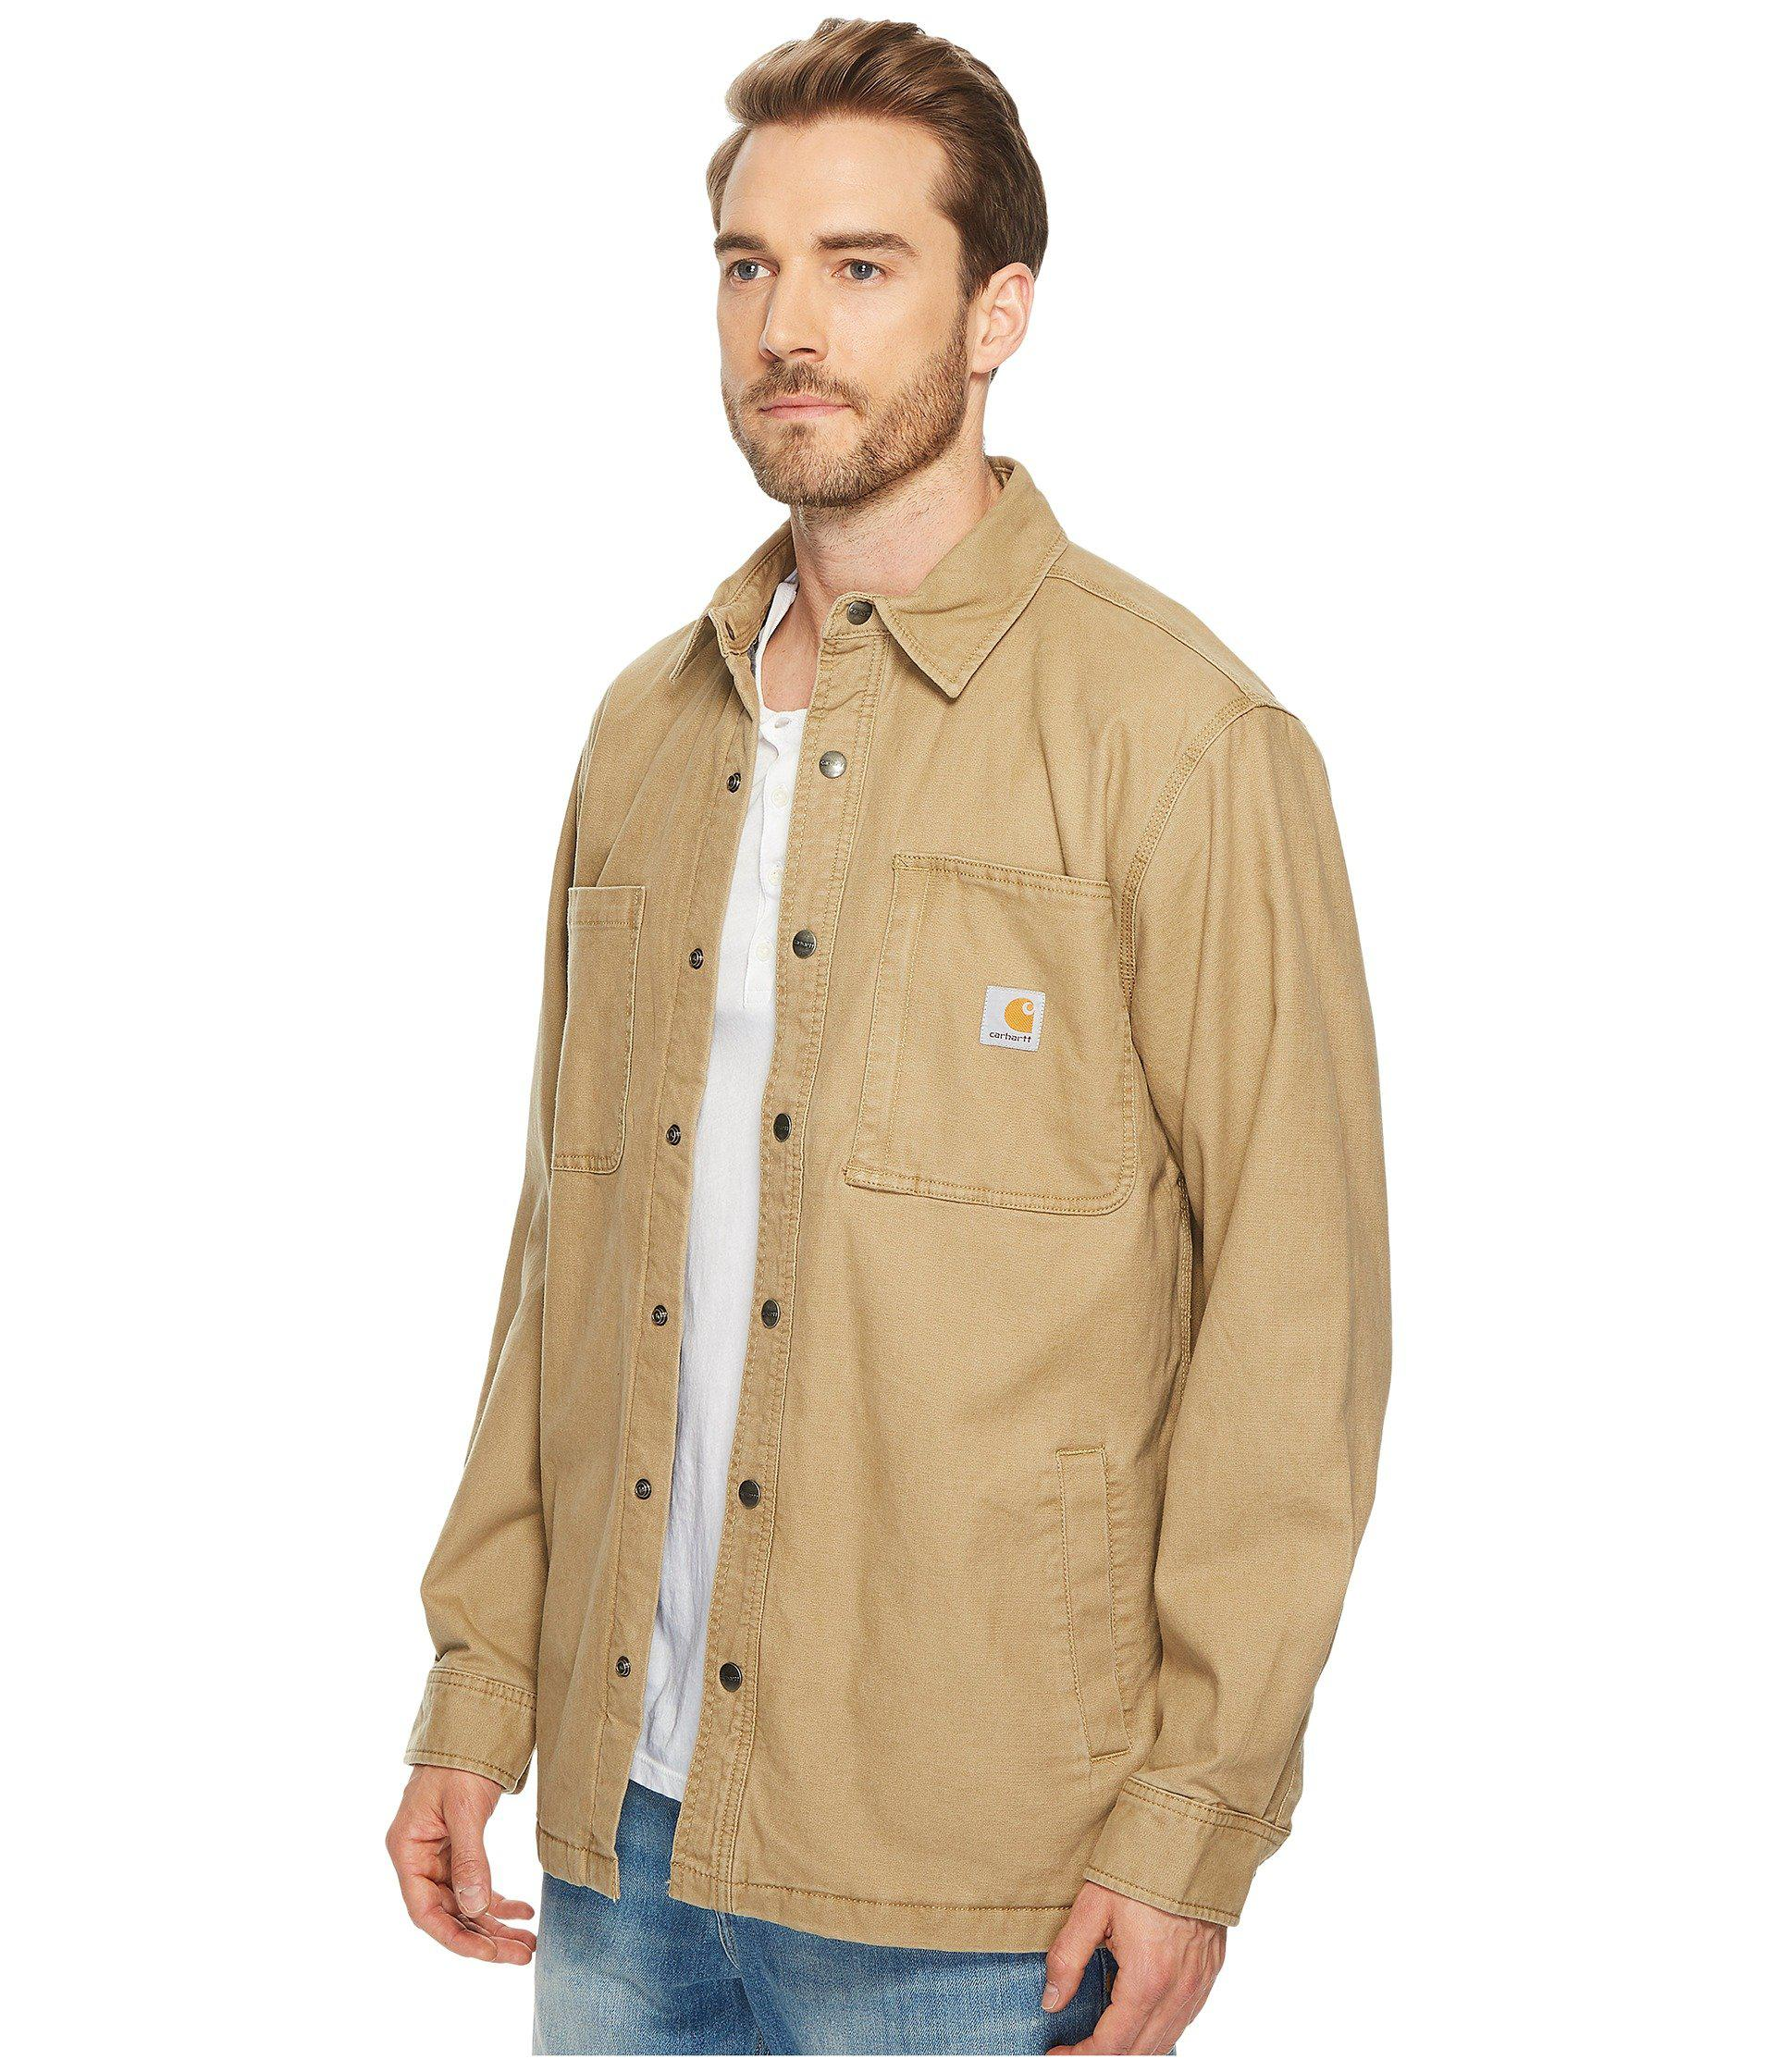 fc1e25a509 Carhartt Rugged Flex® Rigby Shirt Jacket in Natural for Men - Lyst